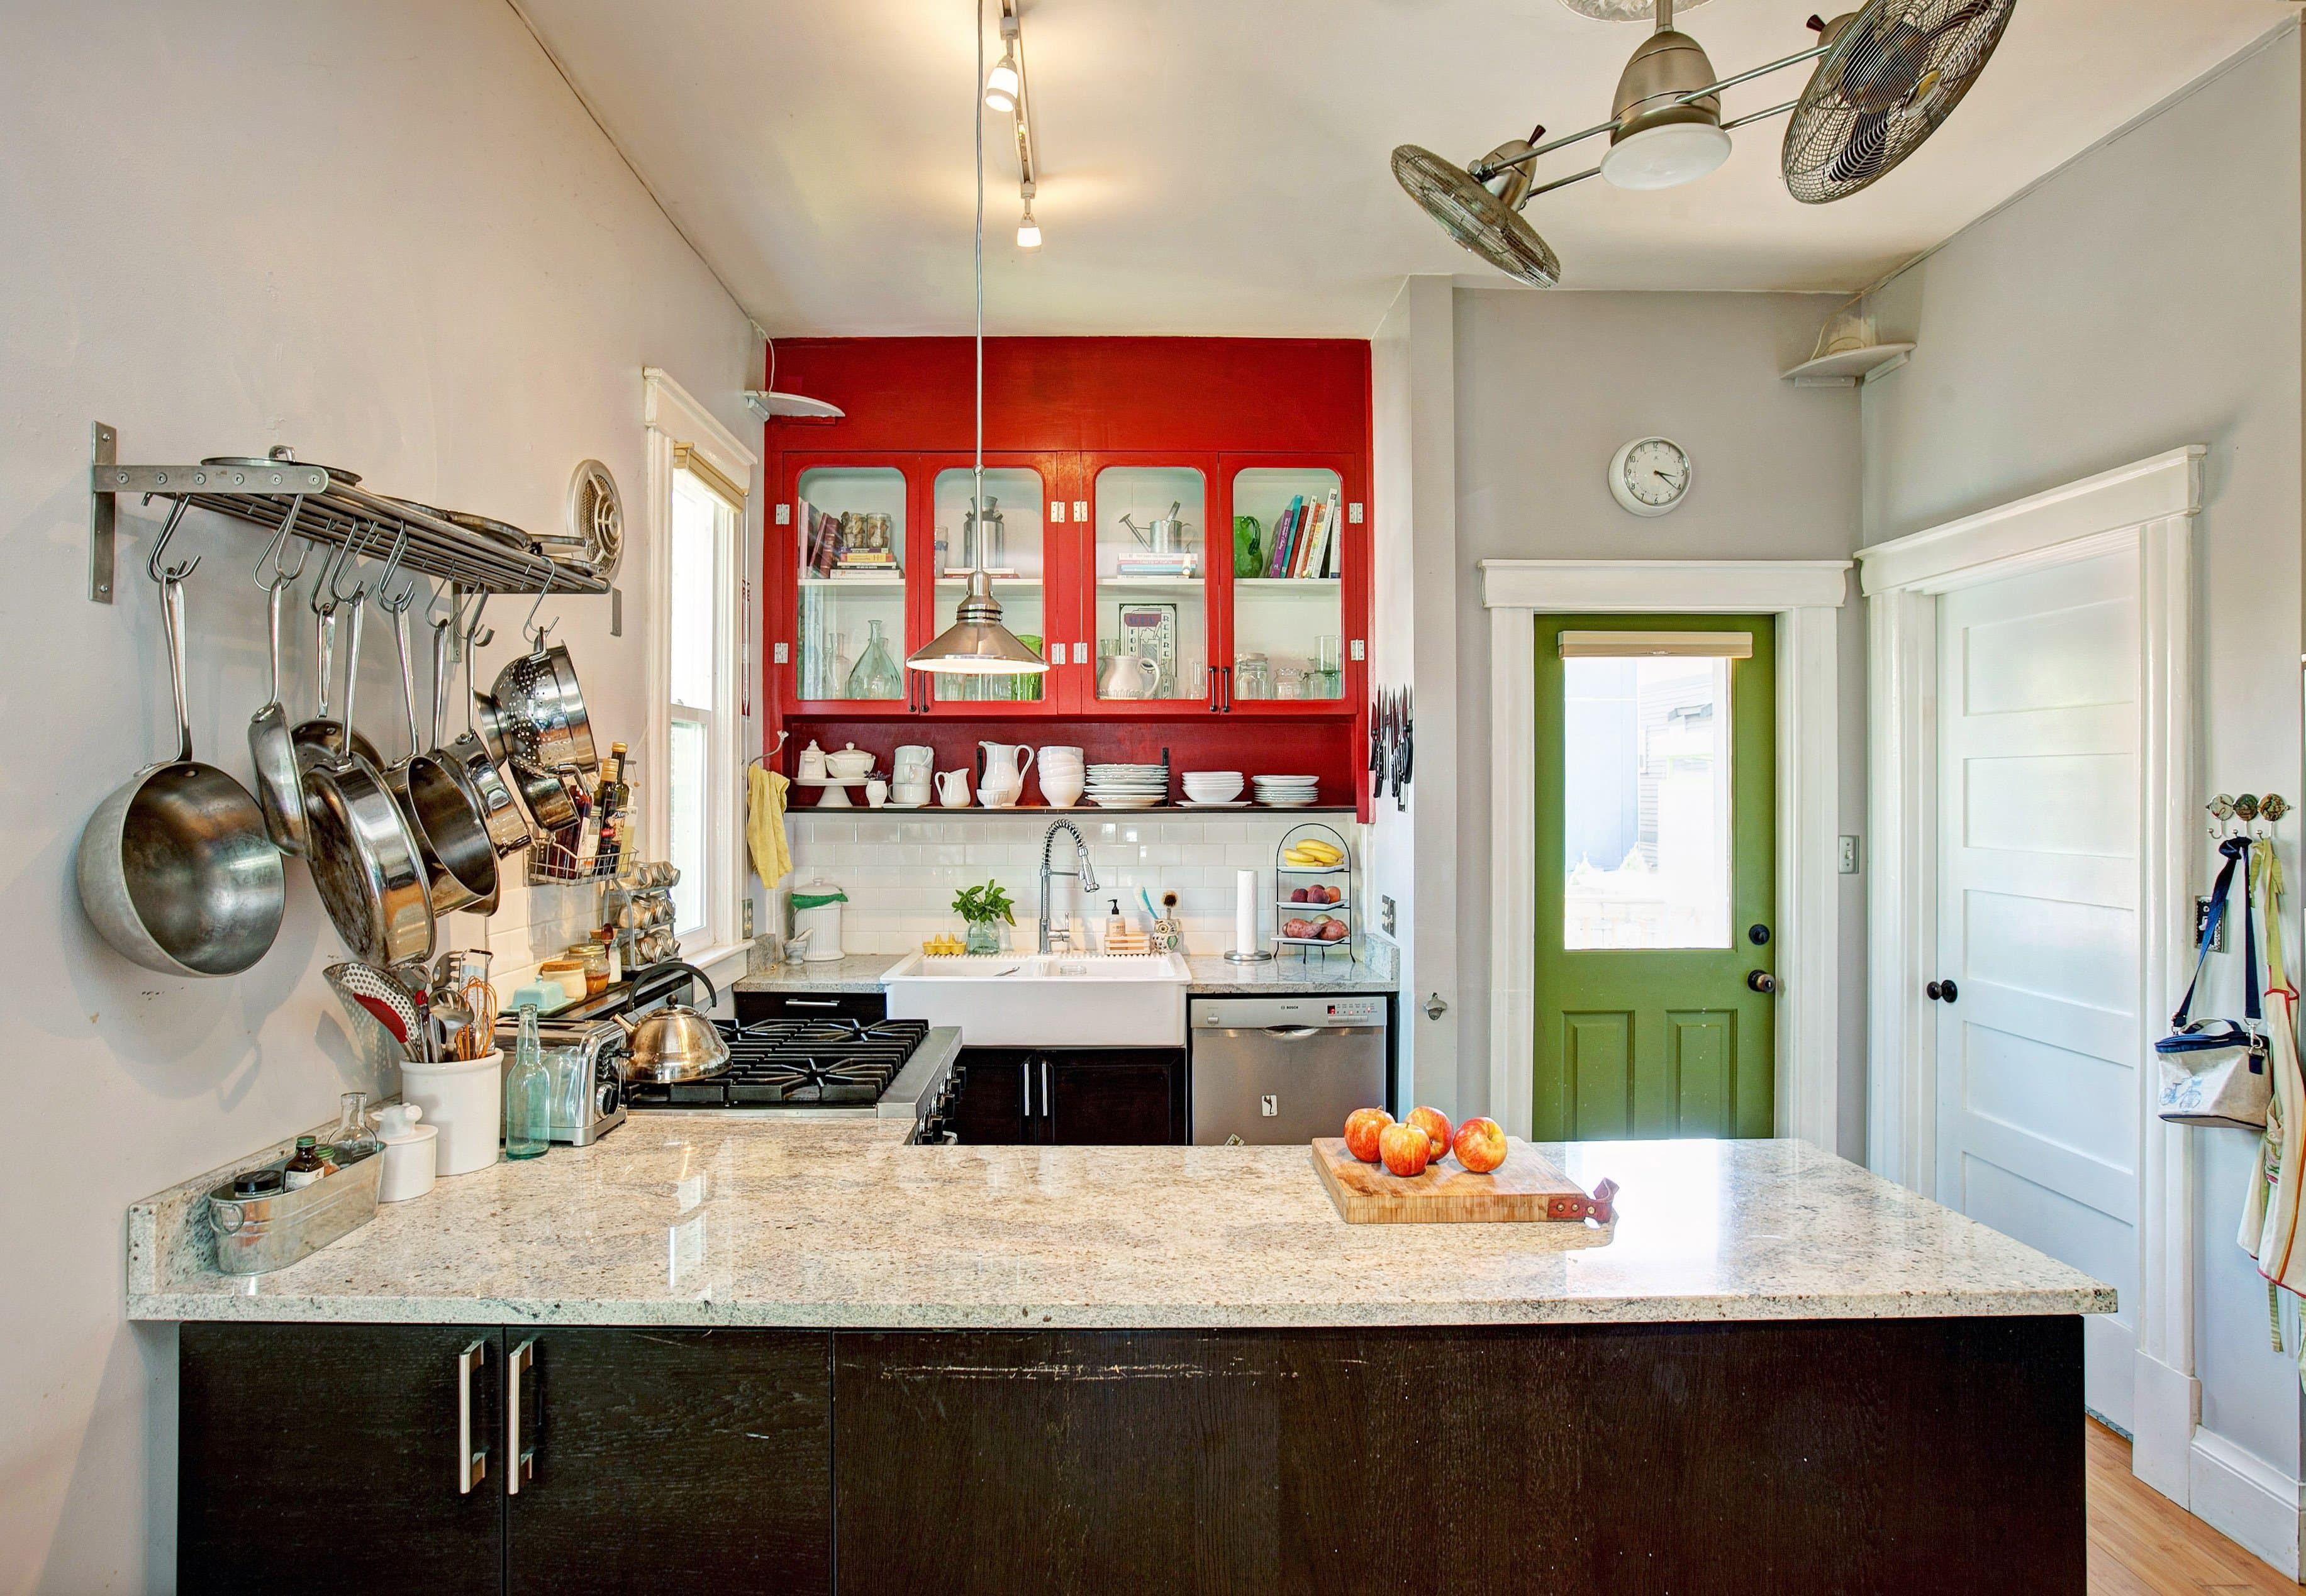 gorgeous red cabinets steal the show in this seattle kitchen